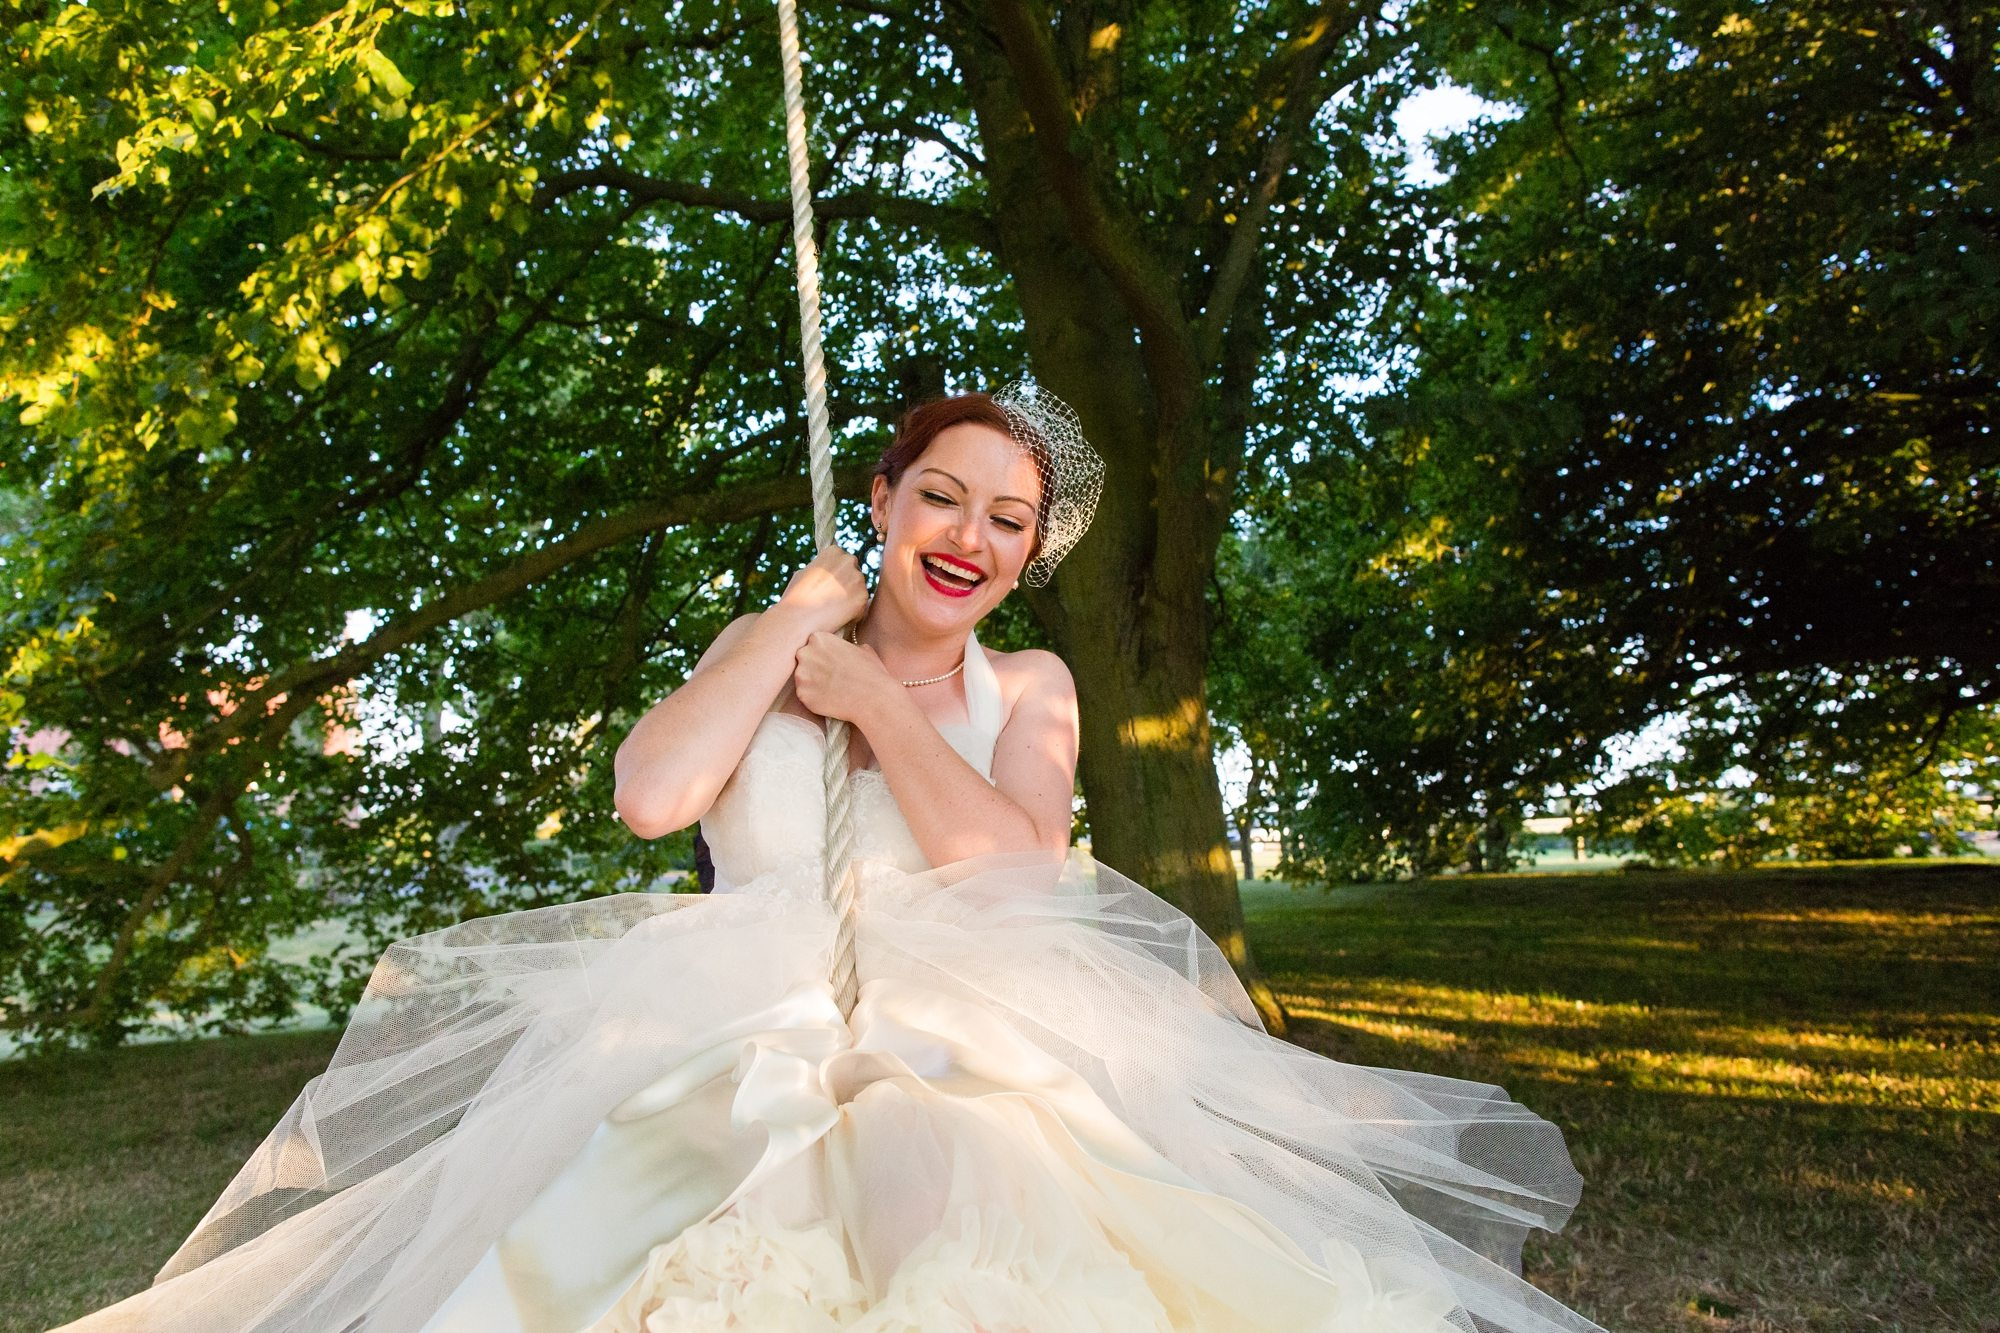 bride swinging on tire swing under tree in York wedding